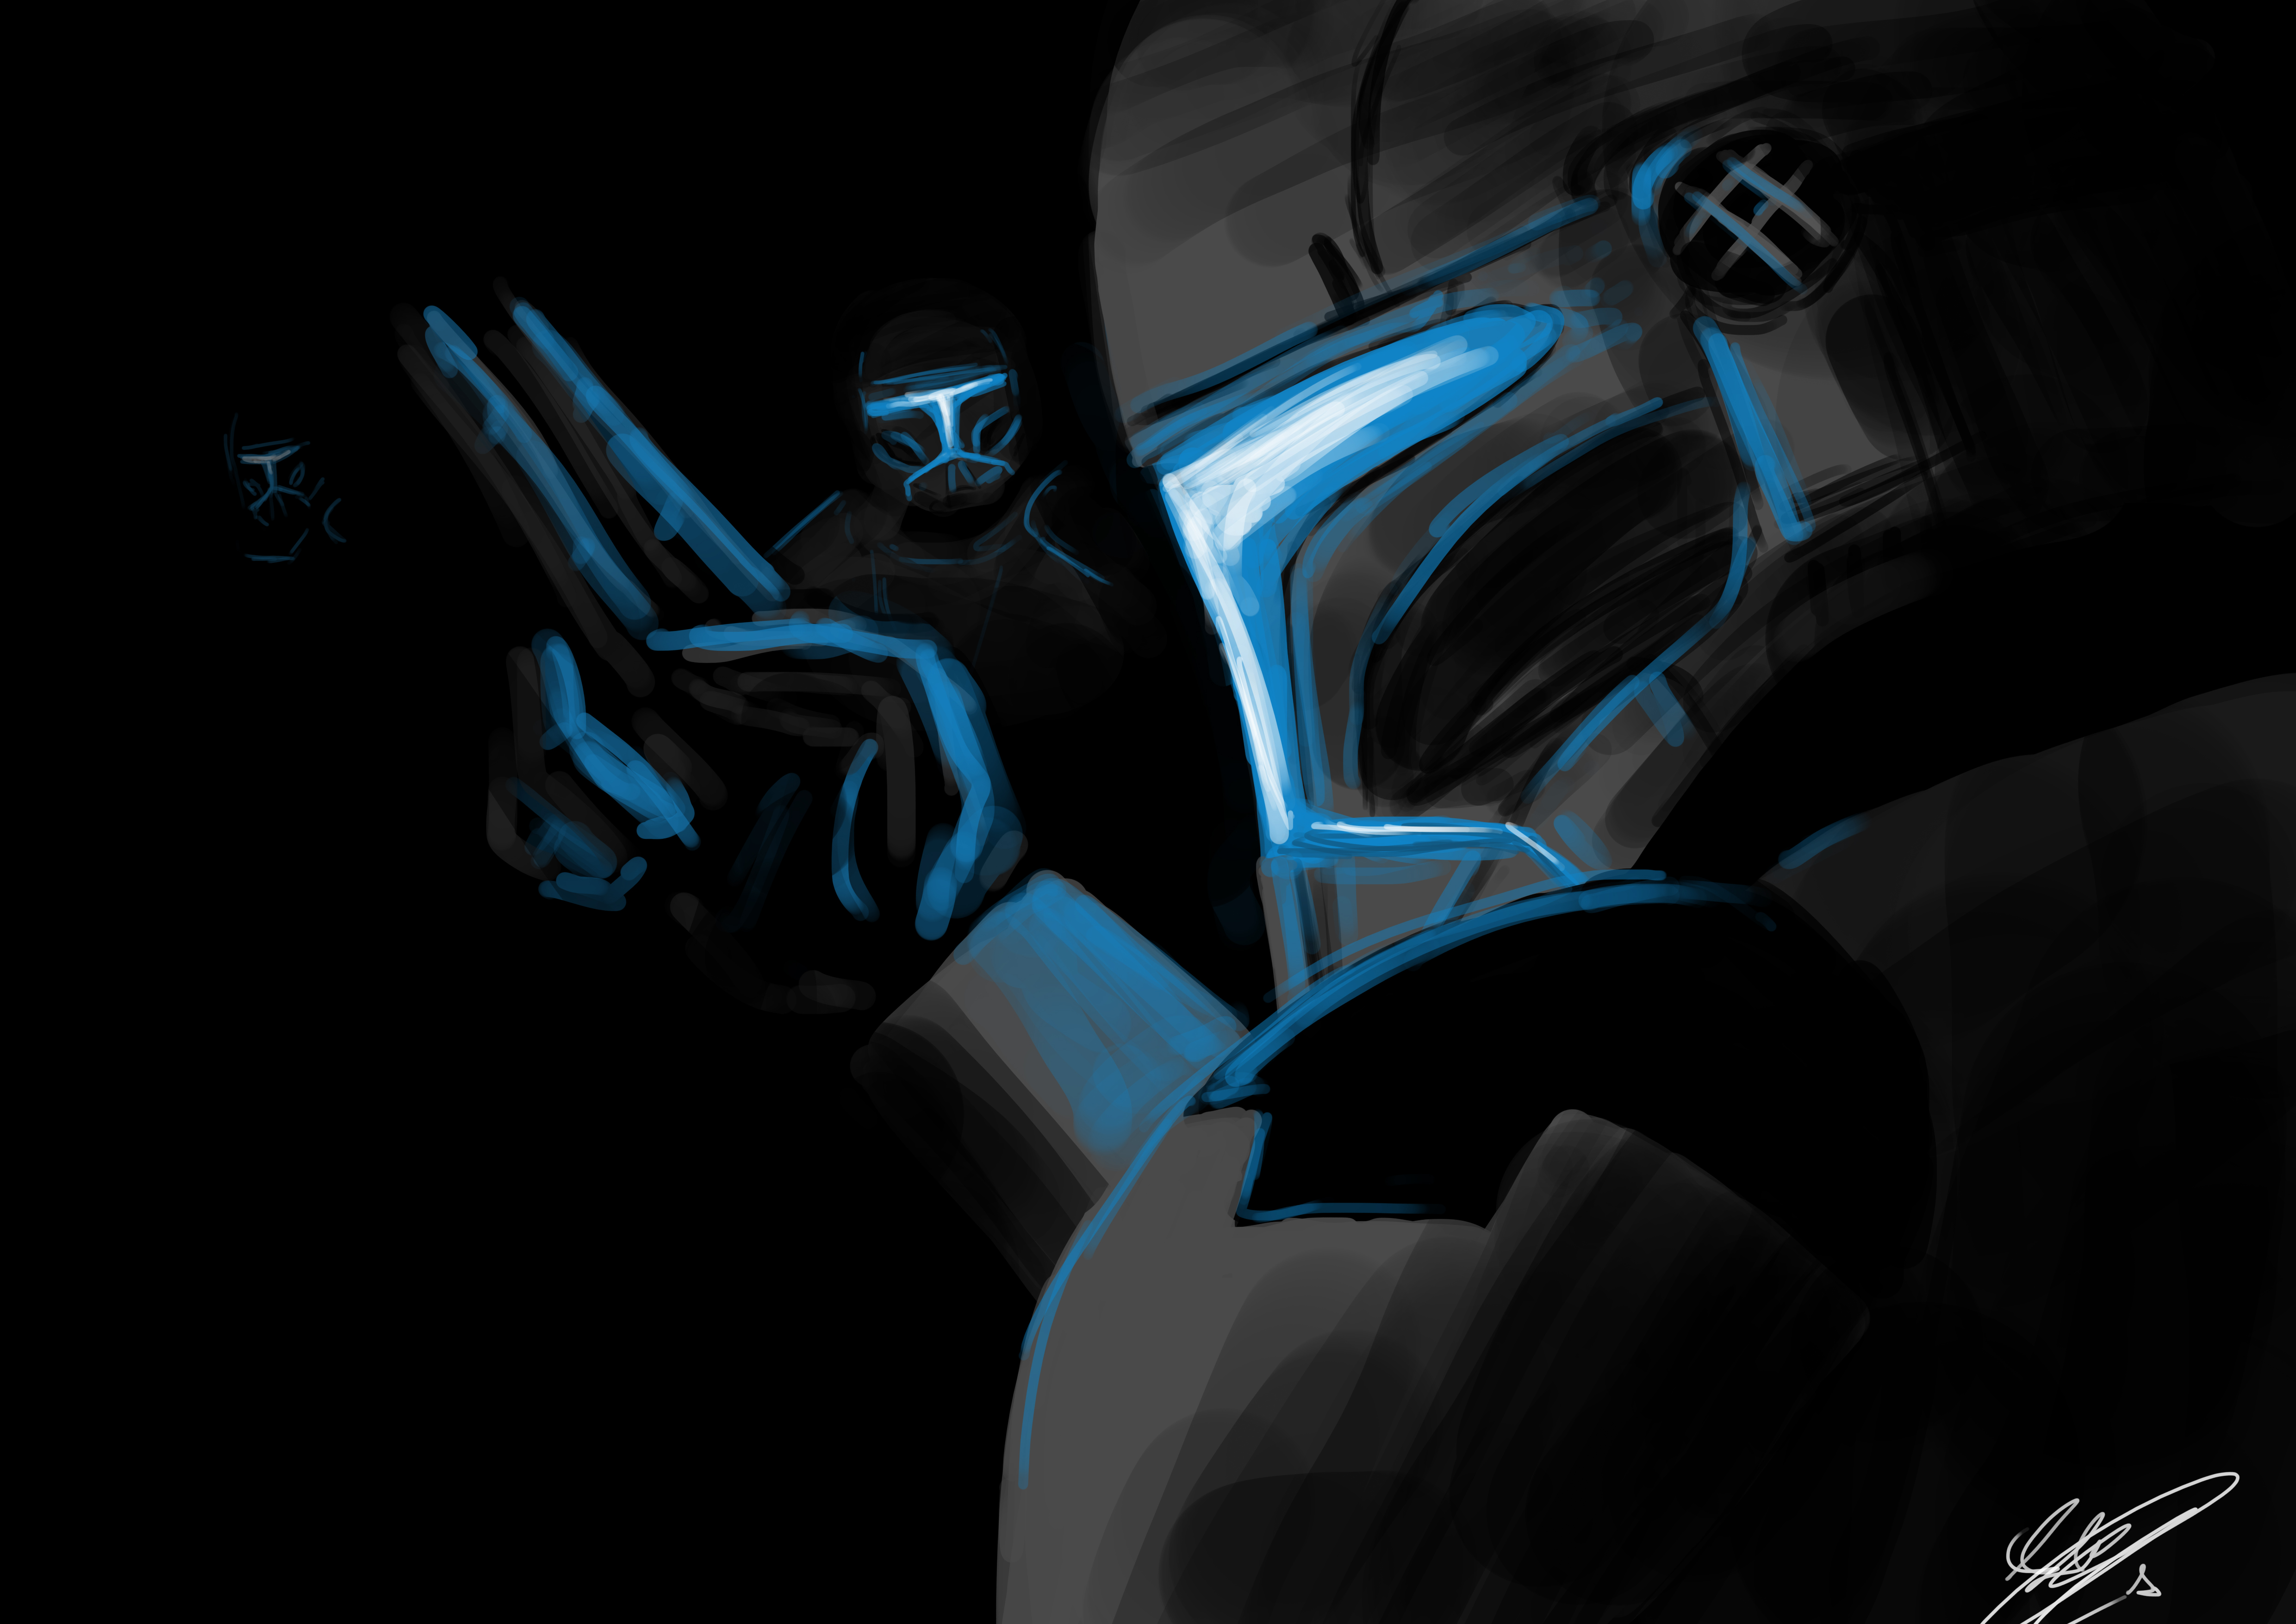 clone troopers in the dark.jpg